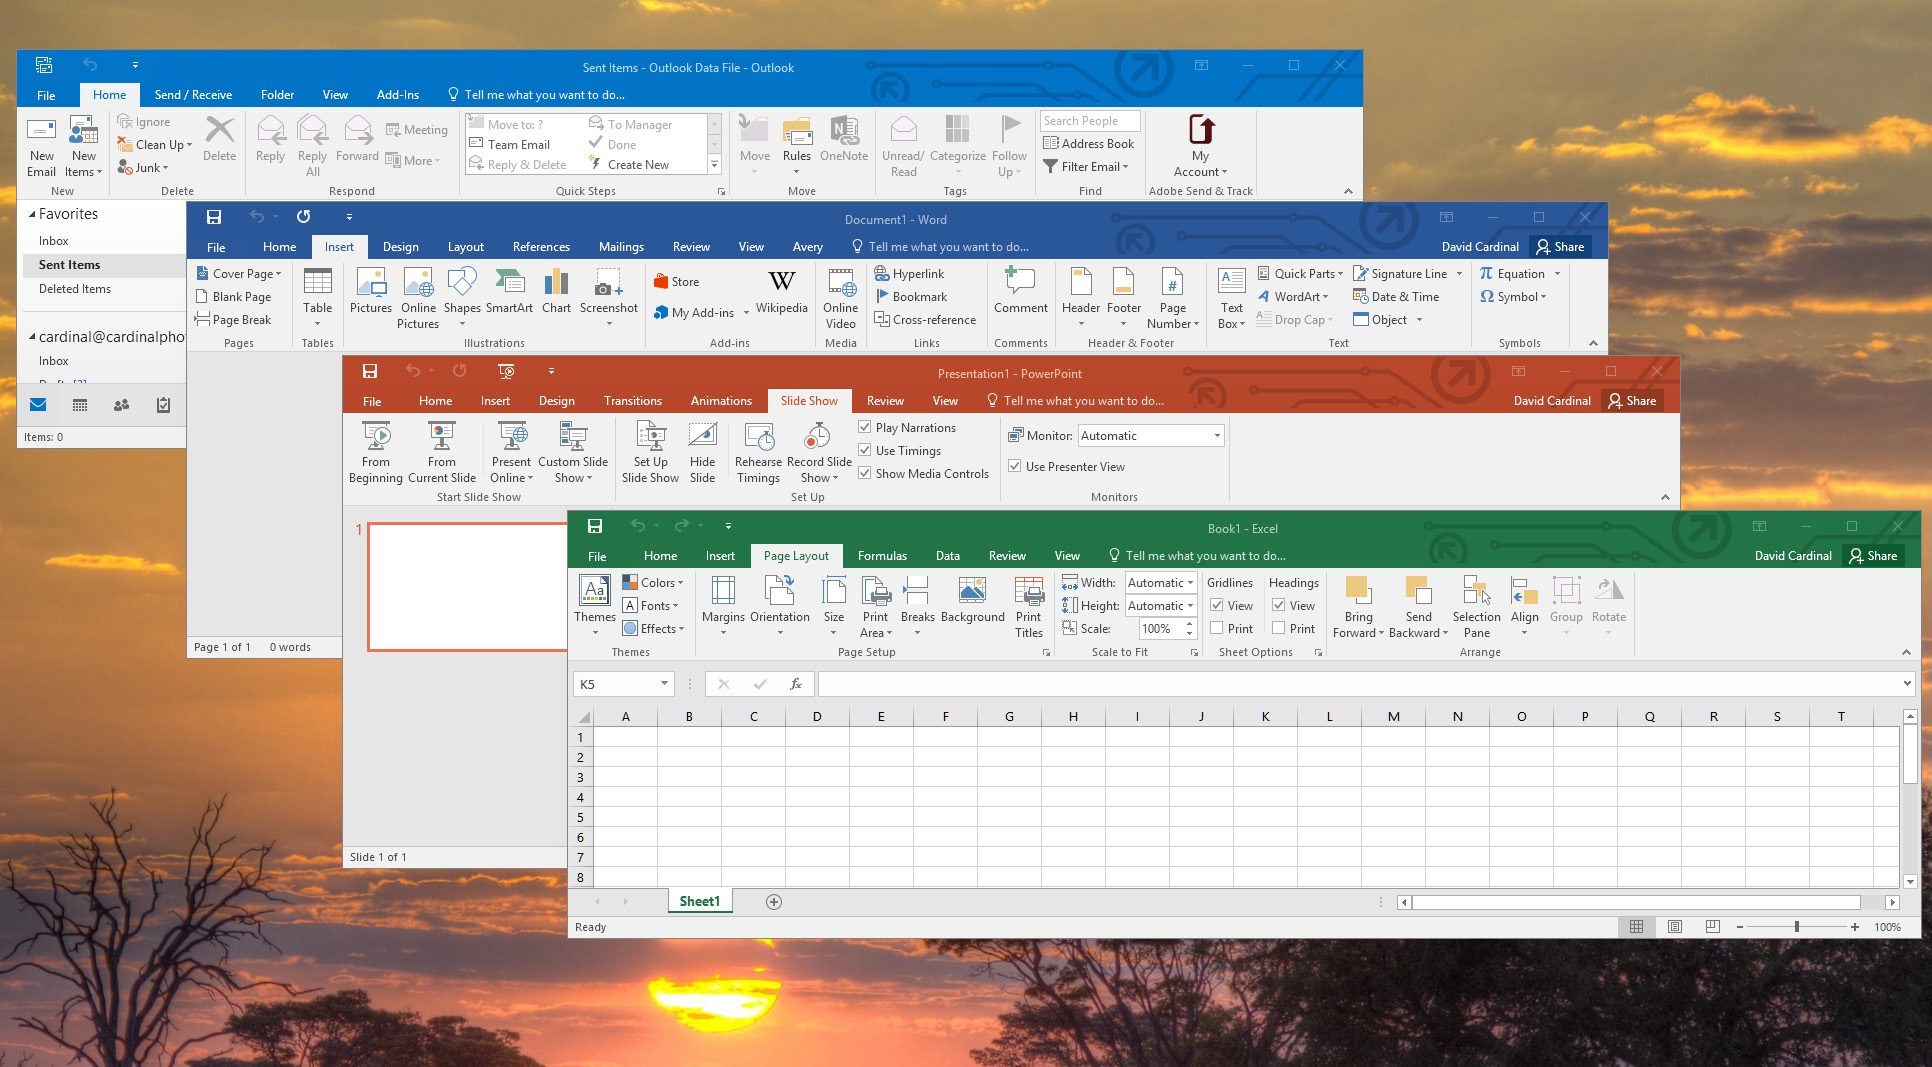 office-2016-preview-applications-look-nearly-the-same-as-those-found-in-office-2013-7651512